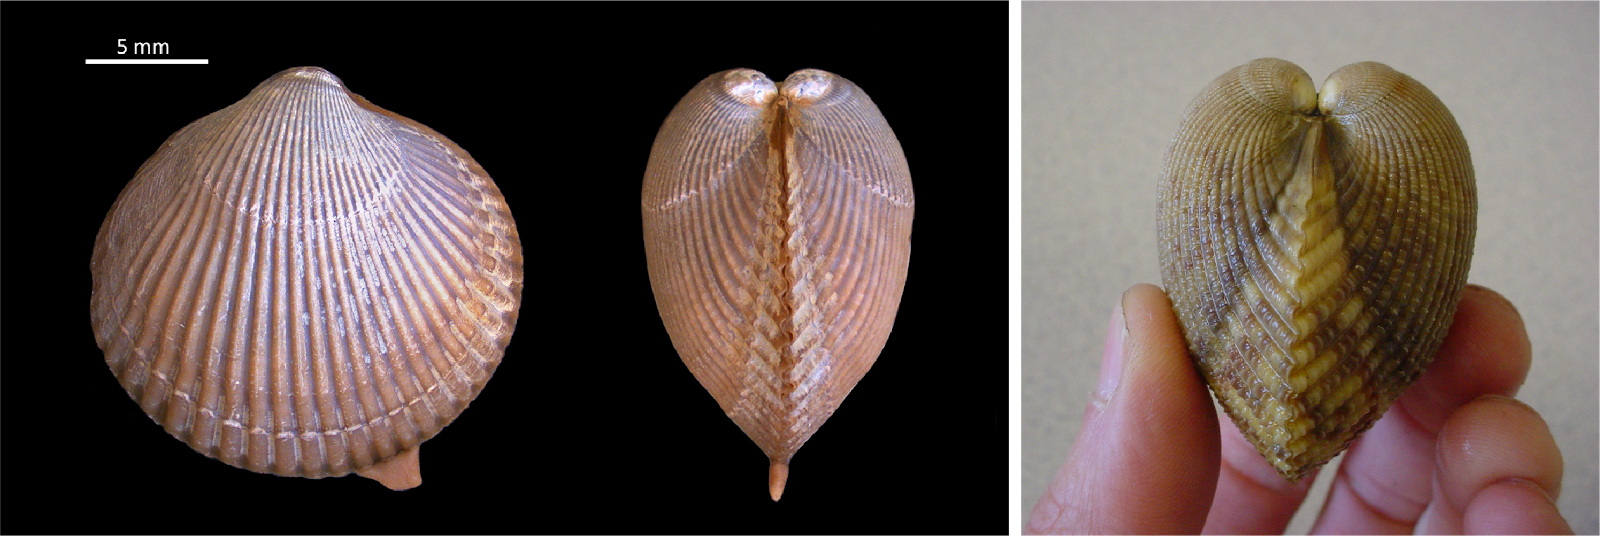 front view of cockle, a clam-like animal, and two side views, one held by a human hand